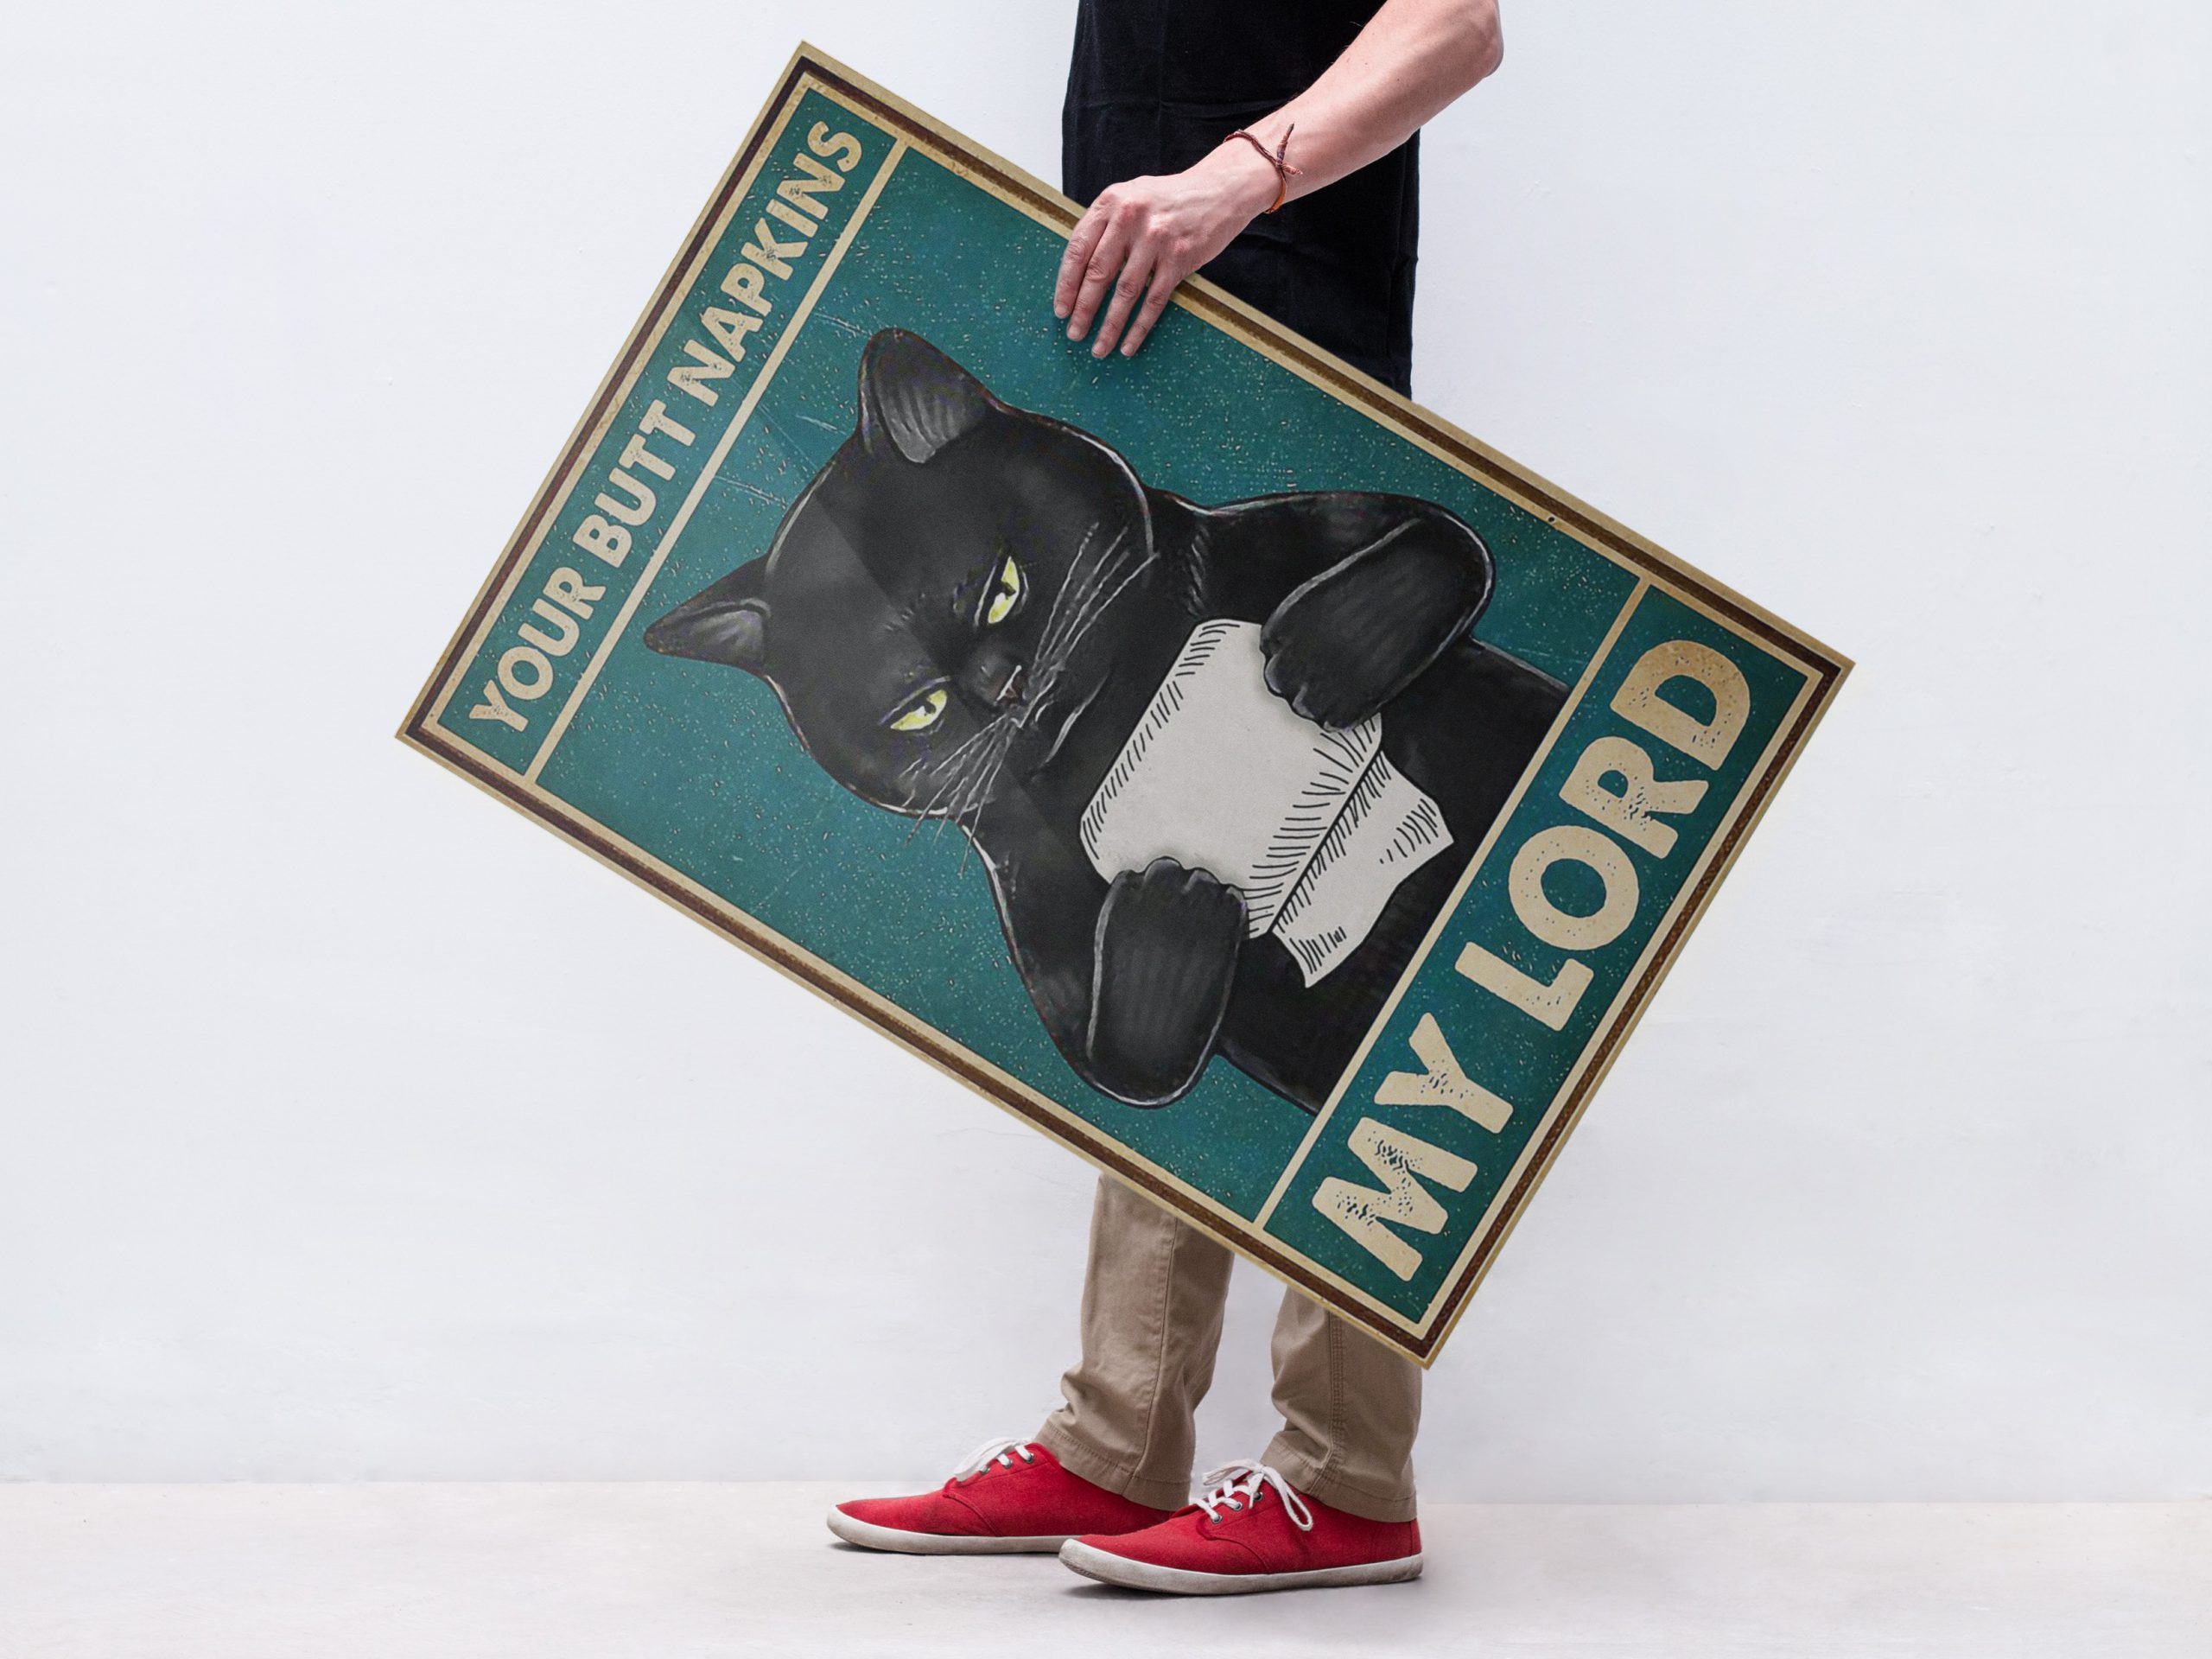 Black cat your butt napkins my Lord poster 1